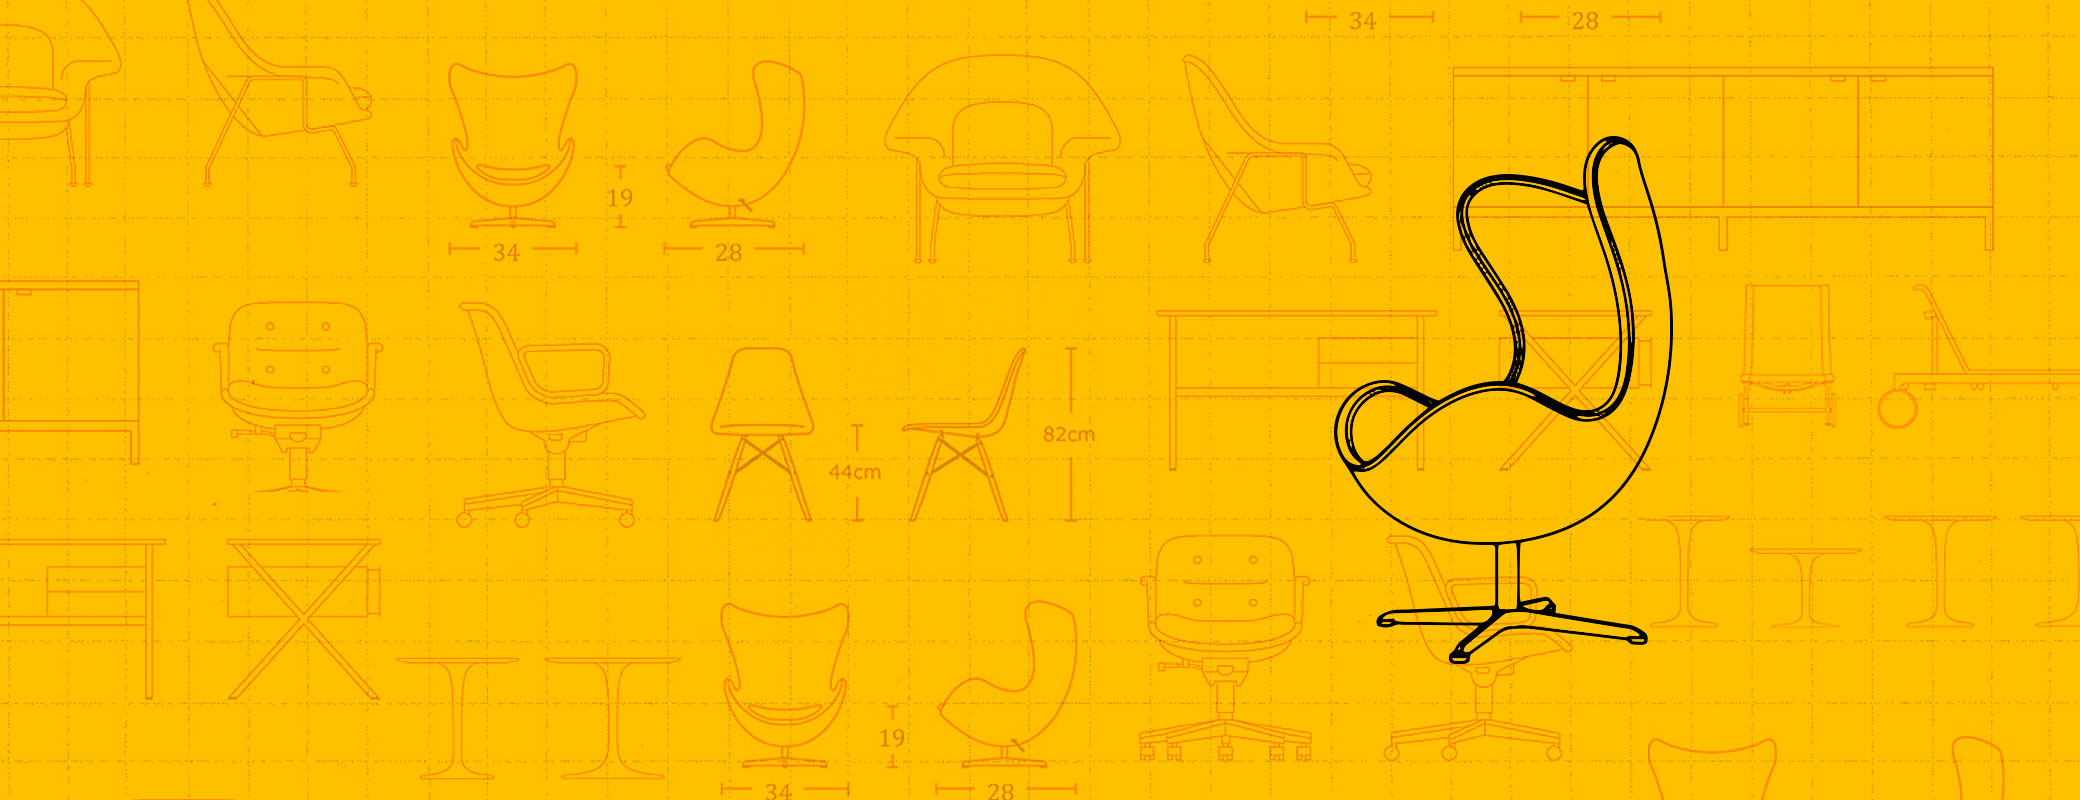 Yellow Möbel Domino The Definitive Source For Mid Century Modern Furniture